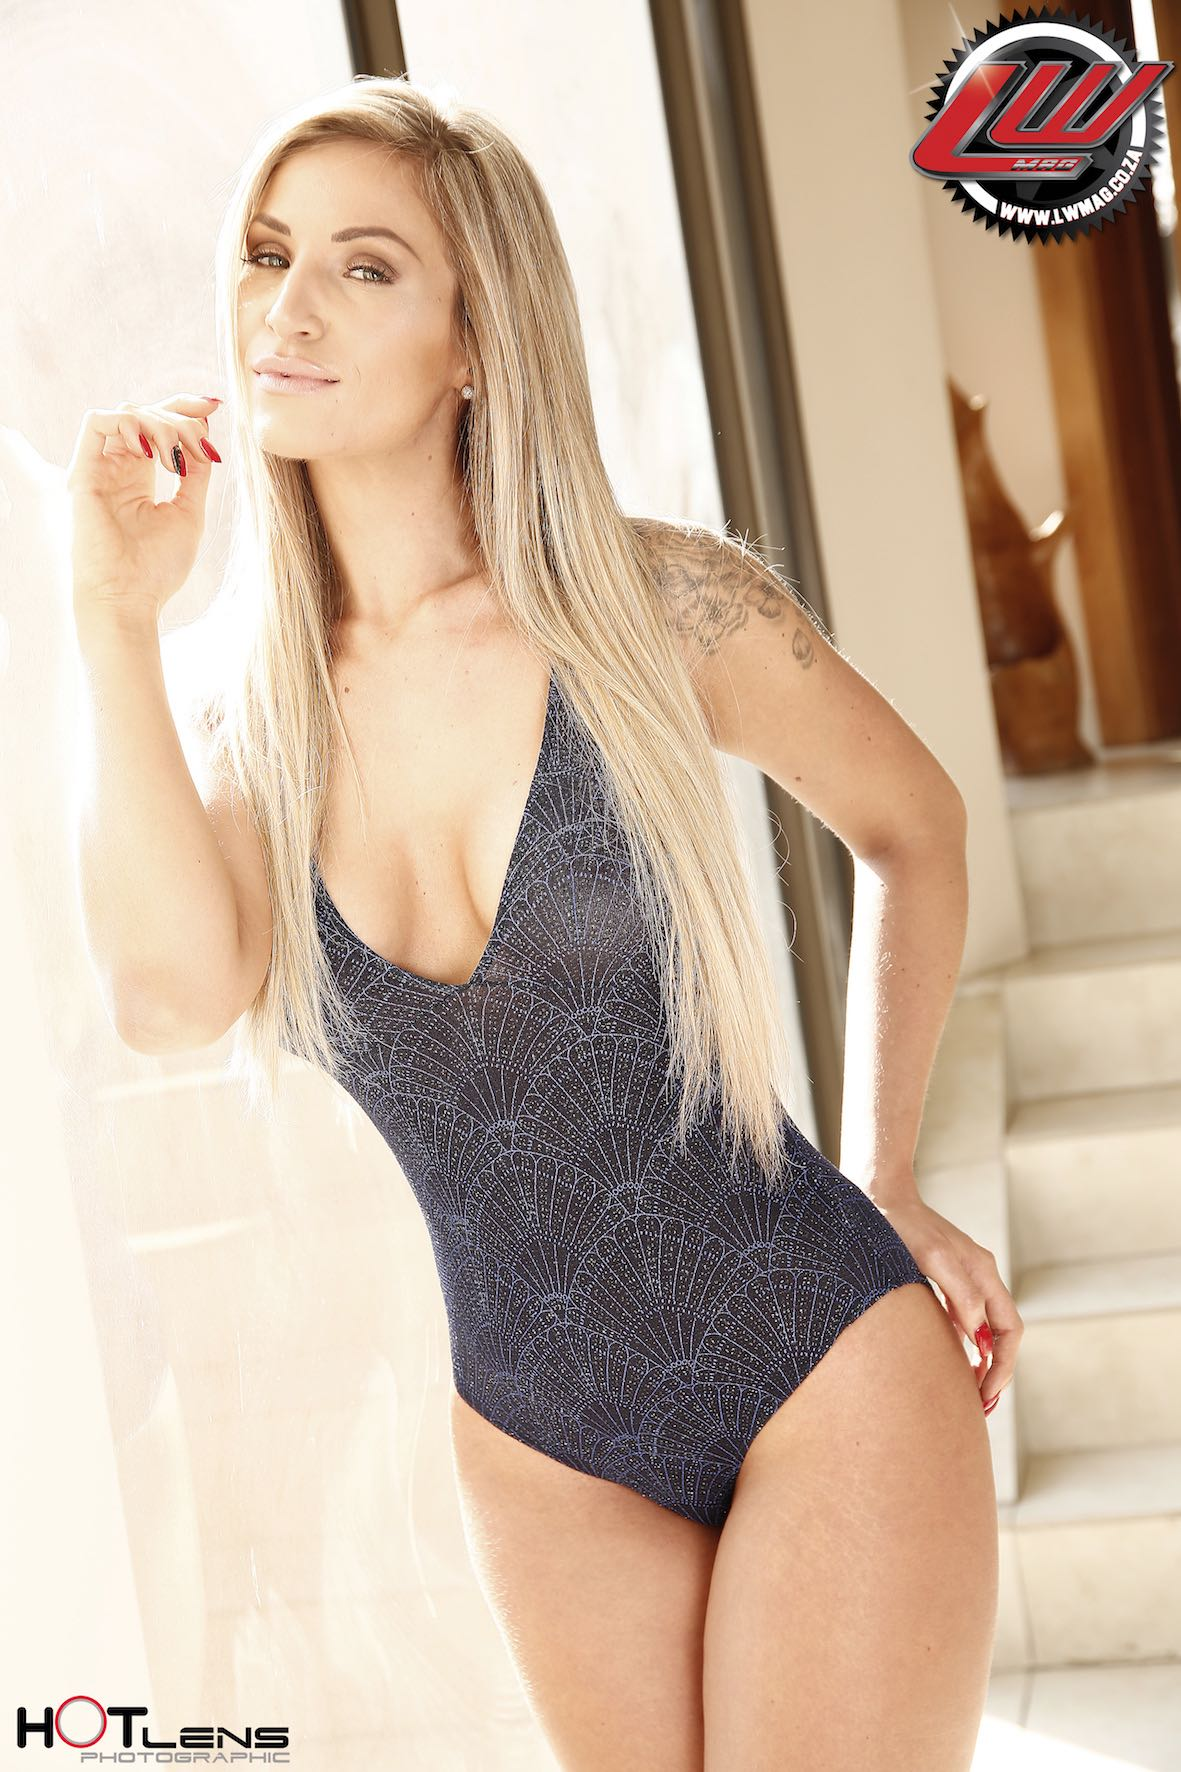 Our South African Babe feature with Kayla Grover